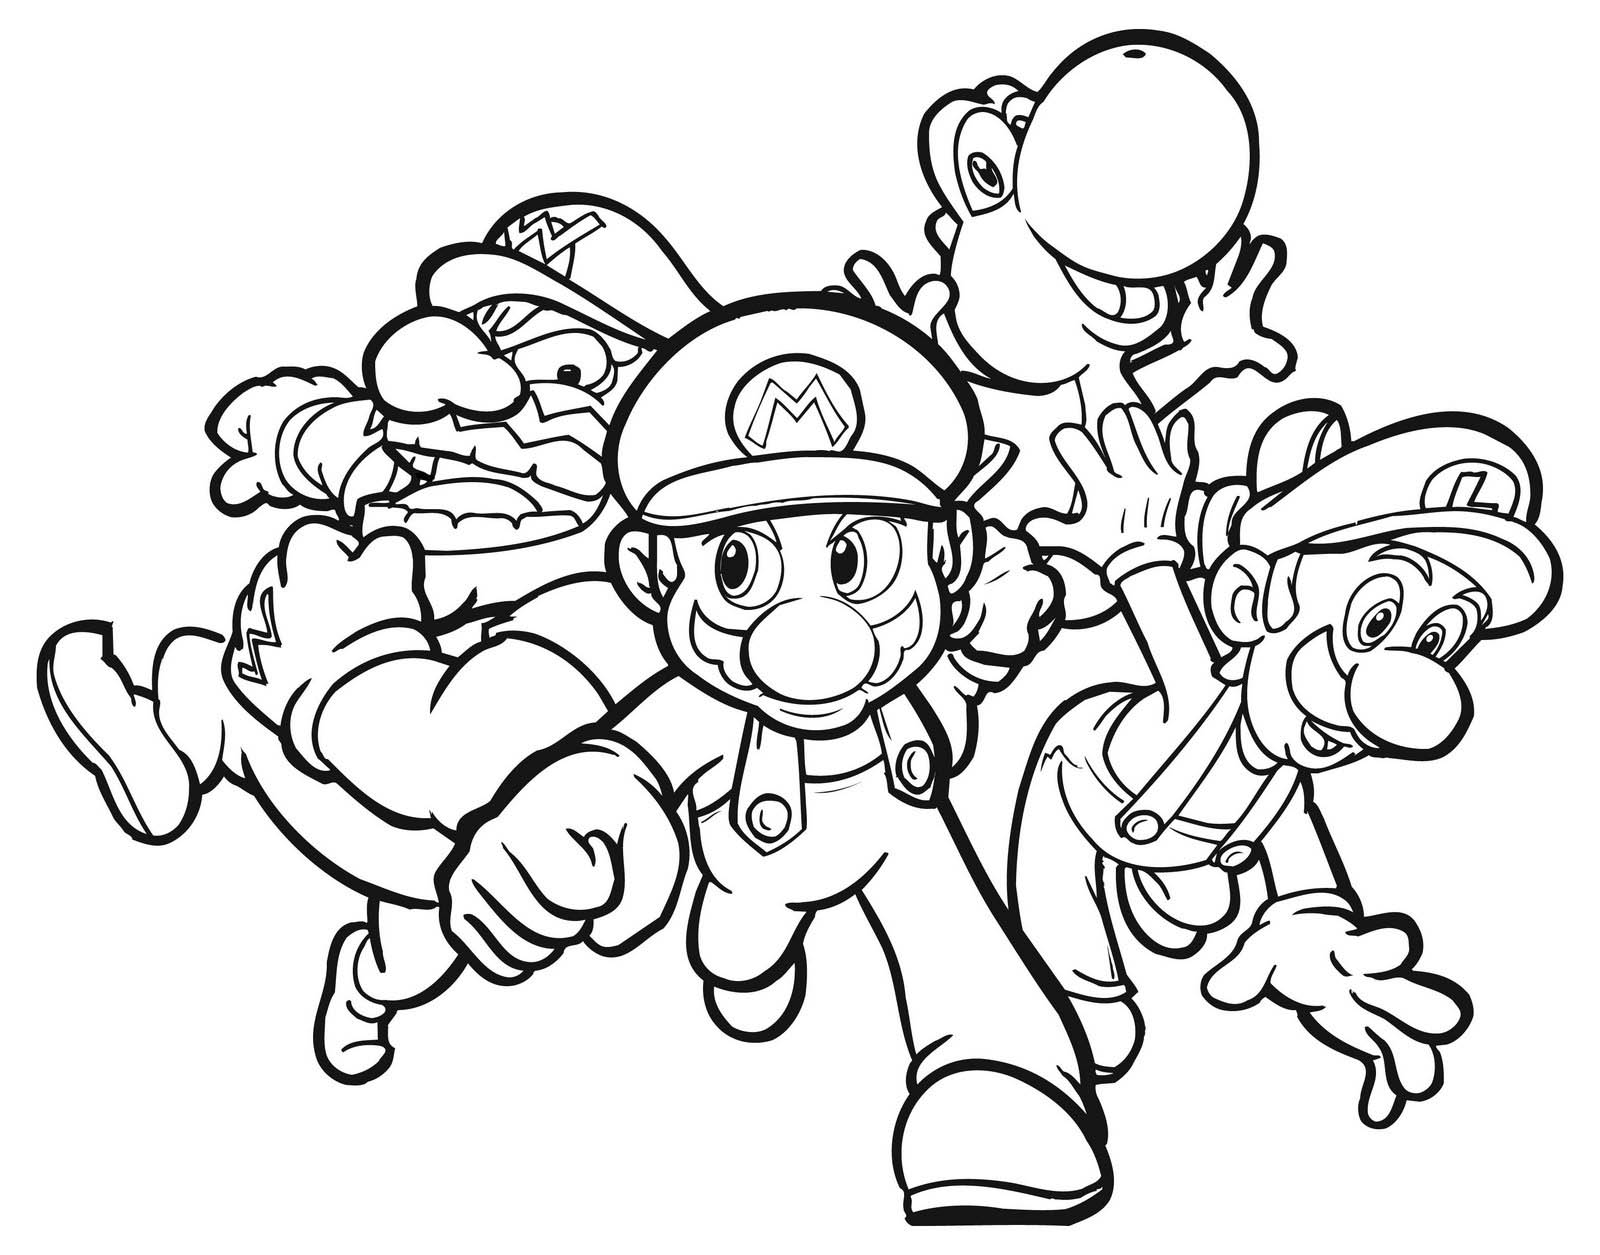 Magic image regarding mario coloring pages printable